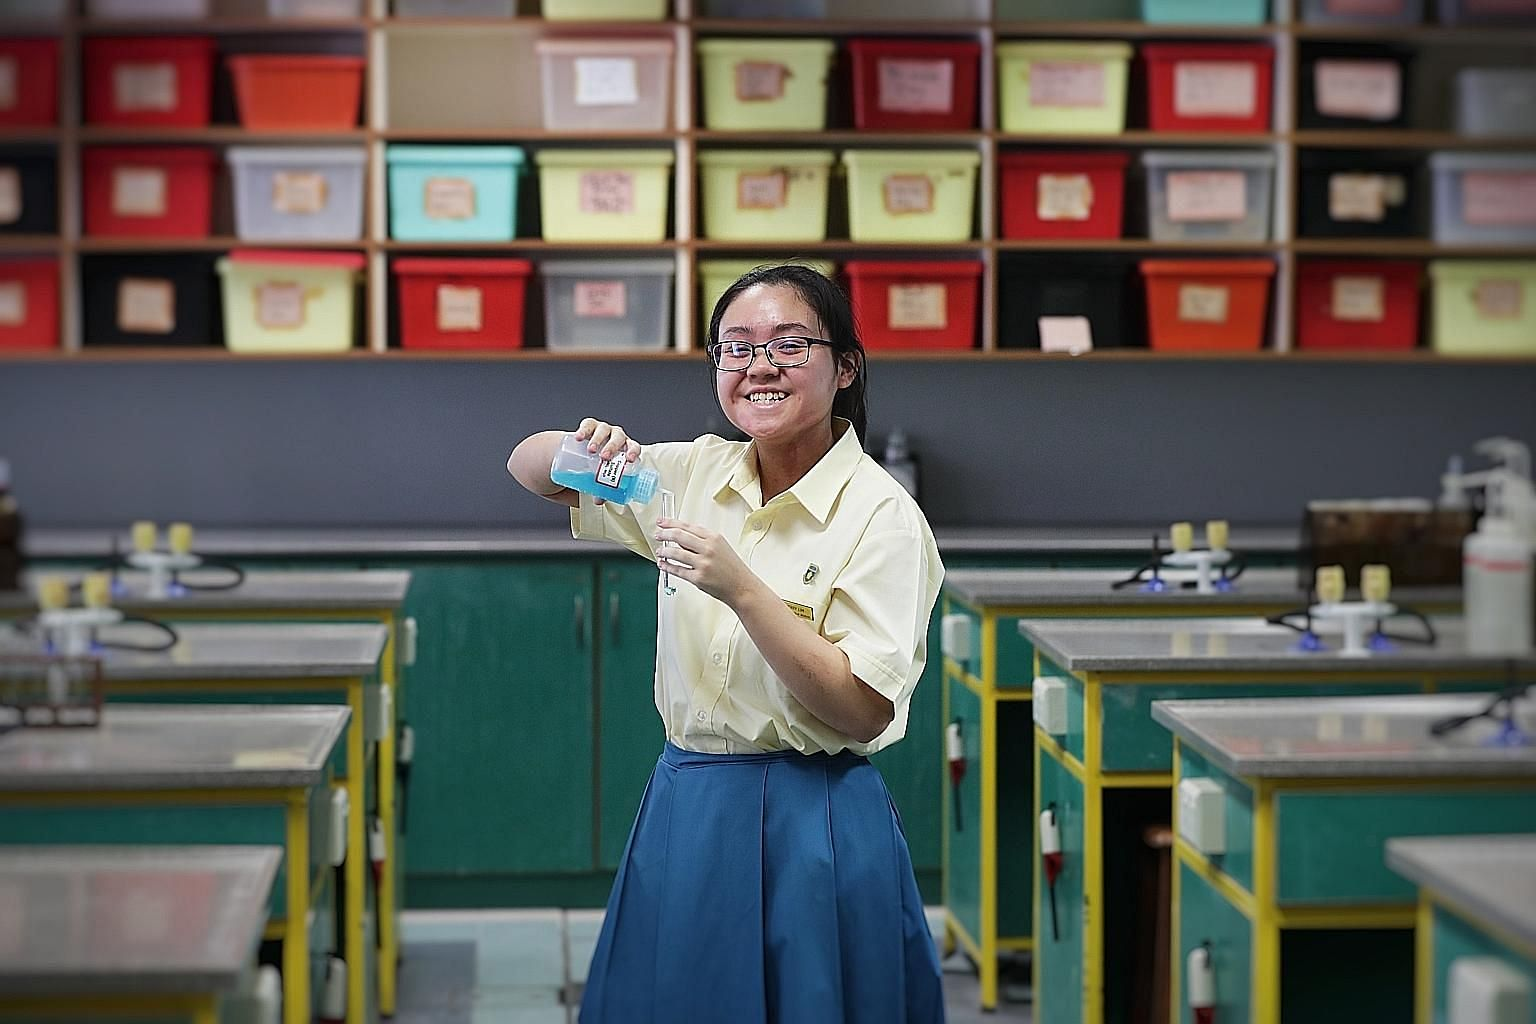 Although she was able to go to school only once a week during her last 1½ years in Crescent Girls' School, Sherry Lim did very well in her O-level exams and says she eventually hopes to become a pharmacist.